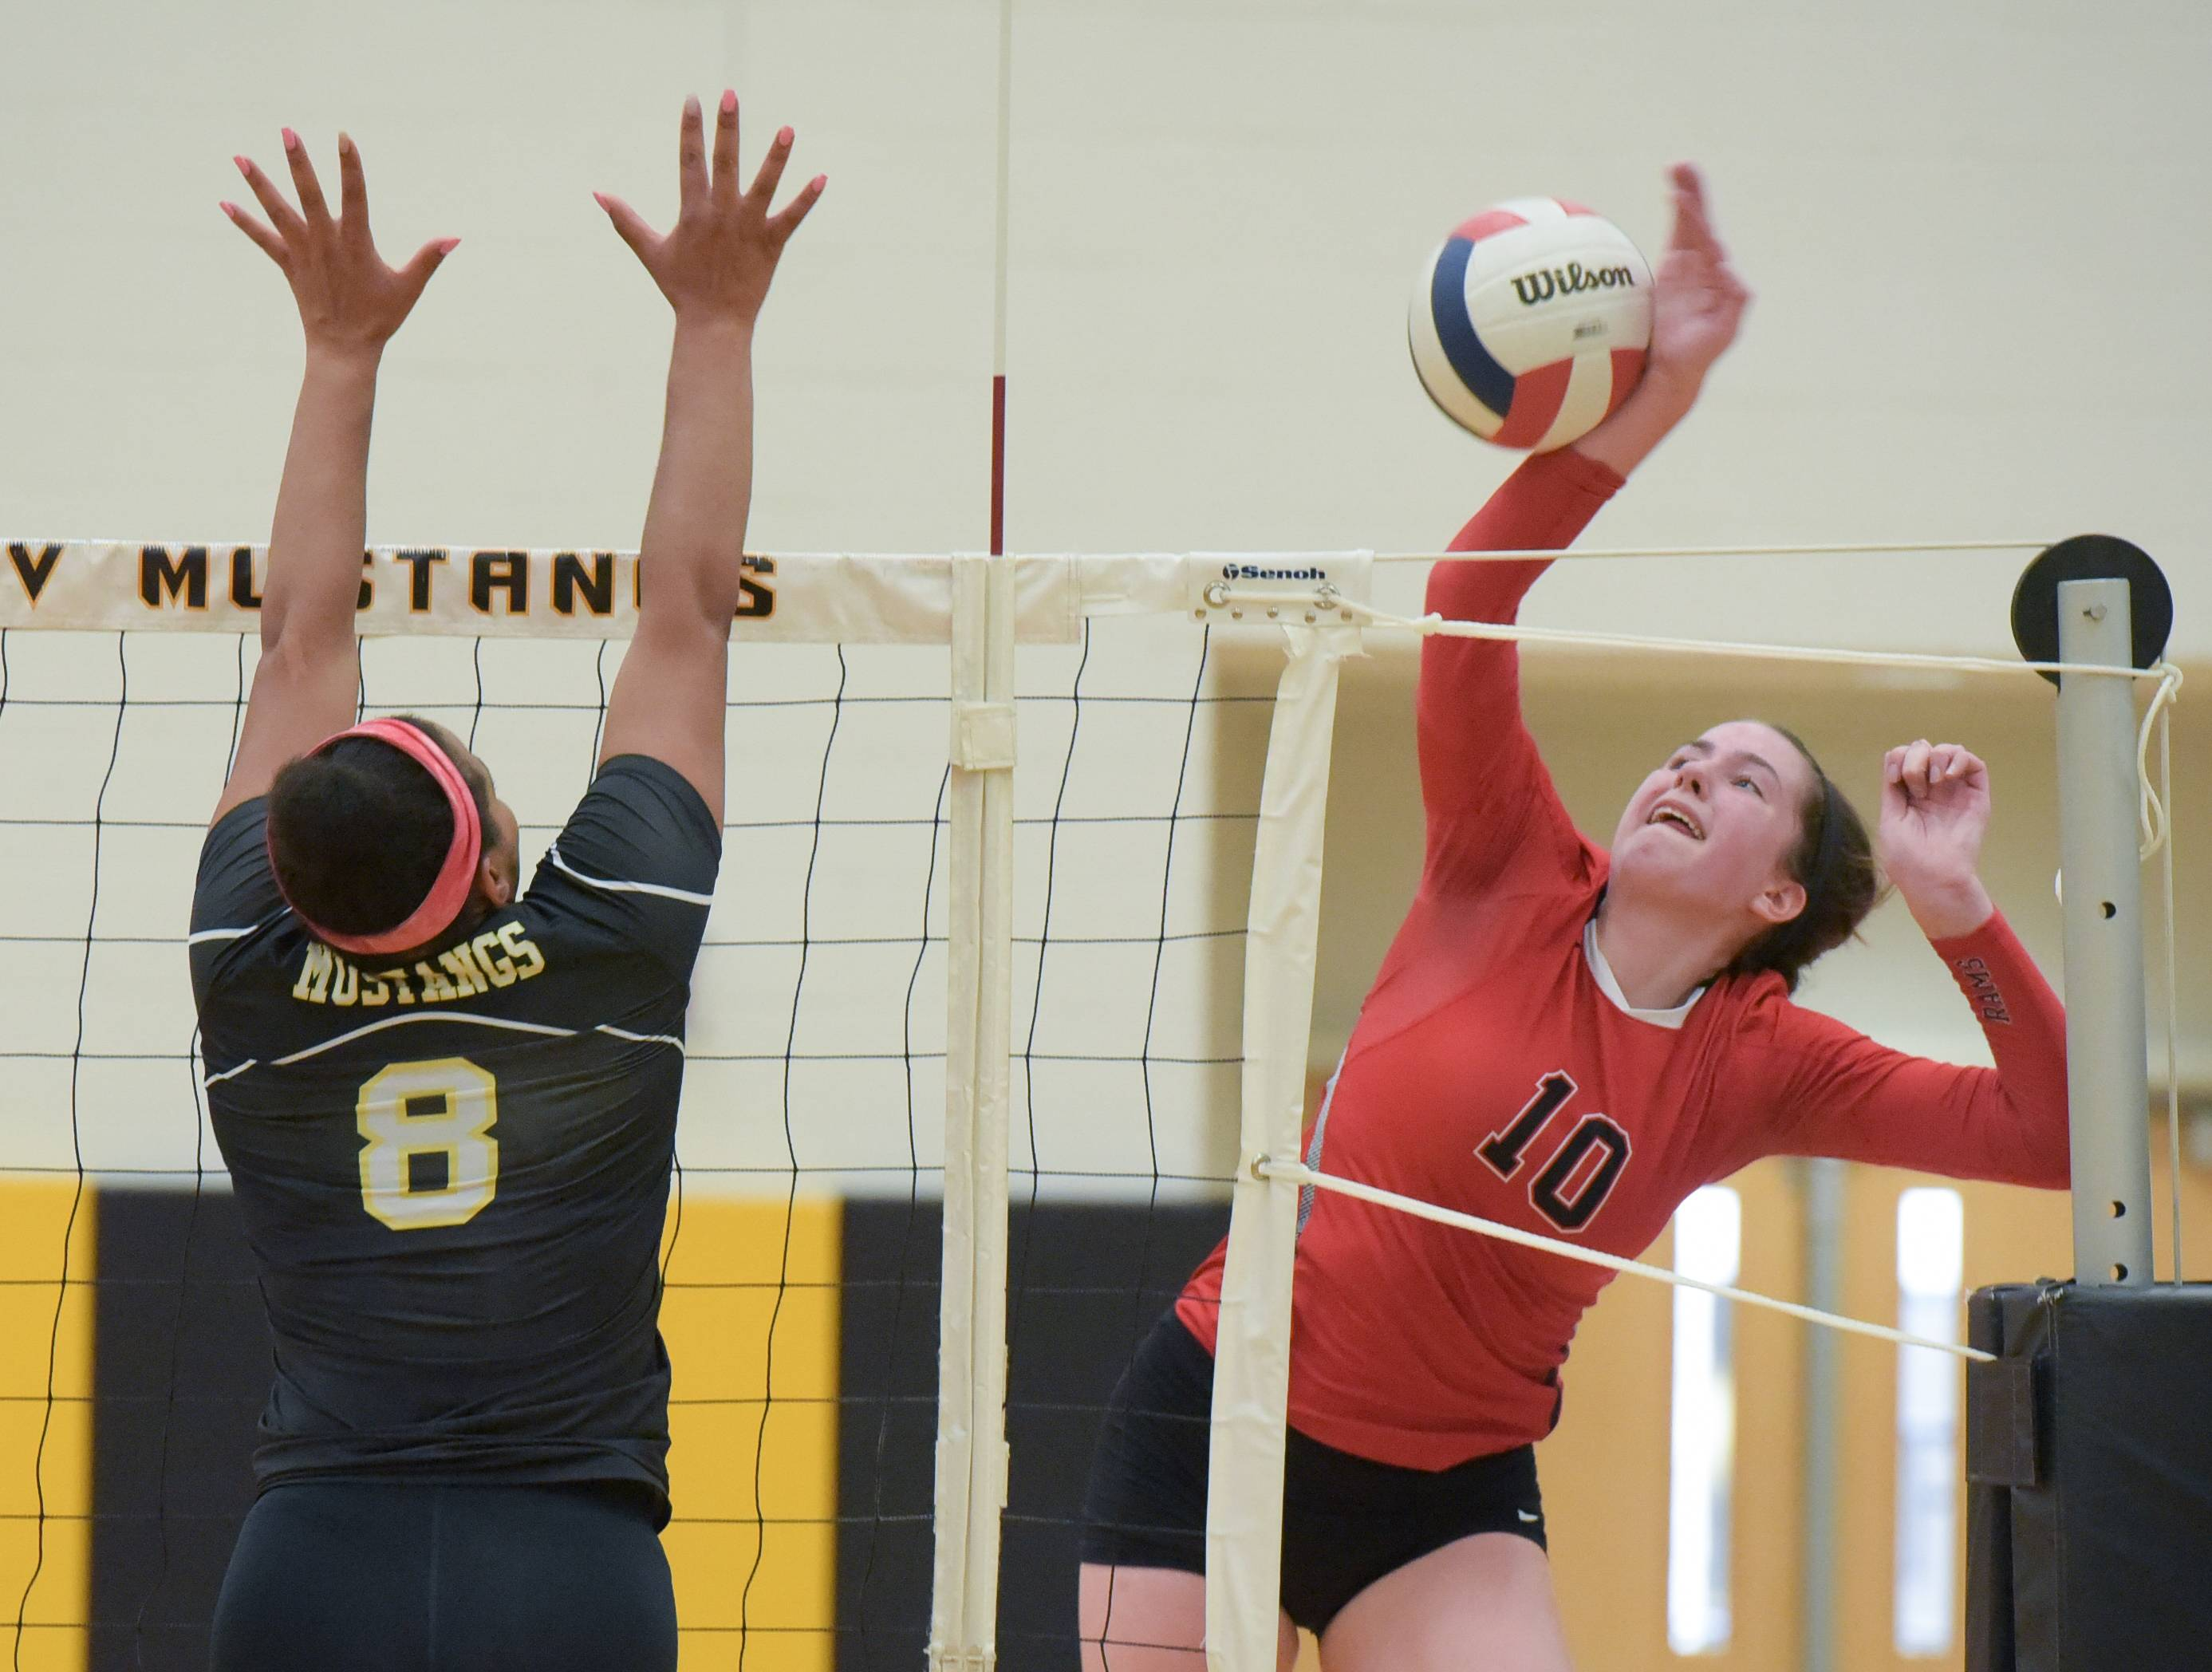 Glenbard East's Sarah Elliott (10) works to keep the ball in play as Metea Valley's Sydnee Marks (8) set up to block her shot during varsity girls volleyball on August 23, 2017.